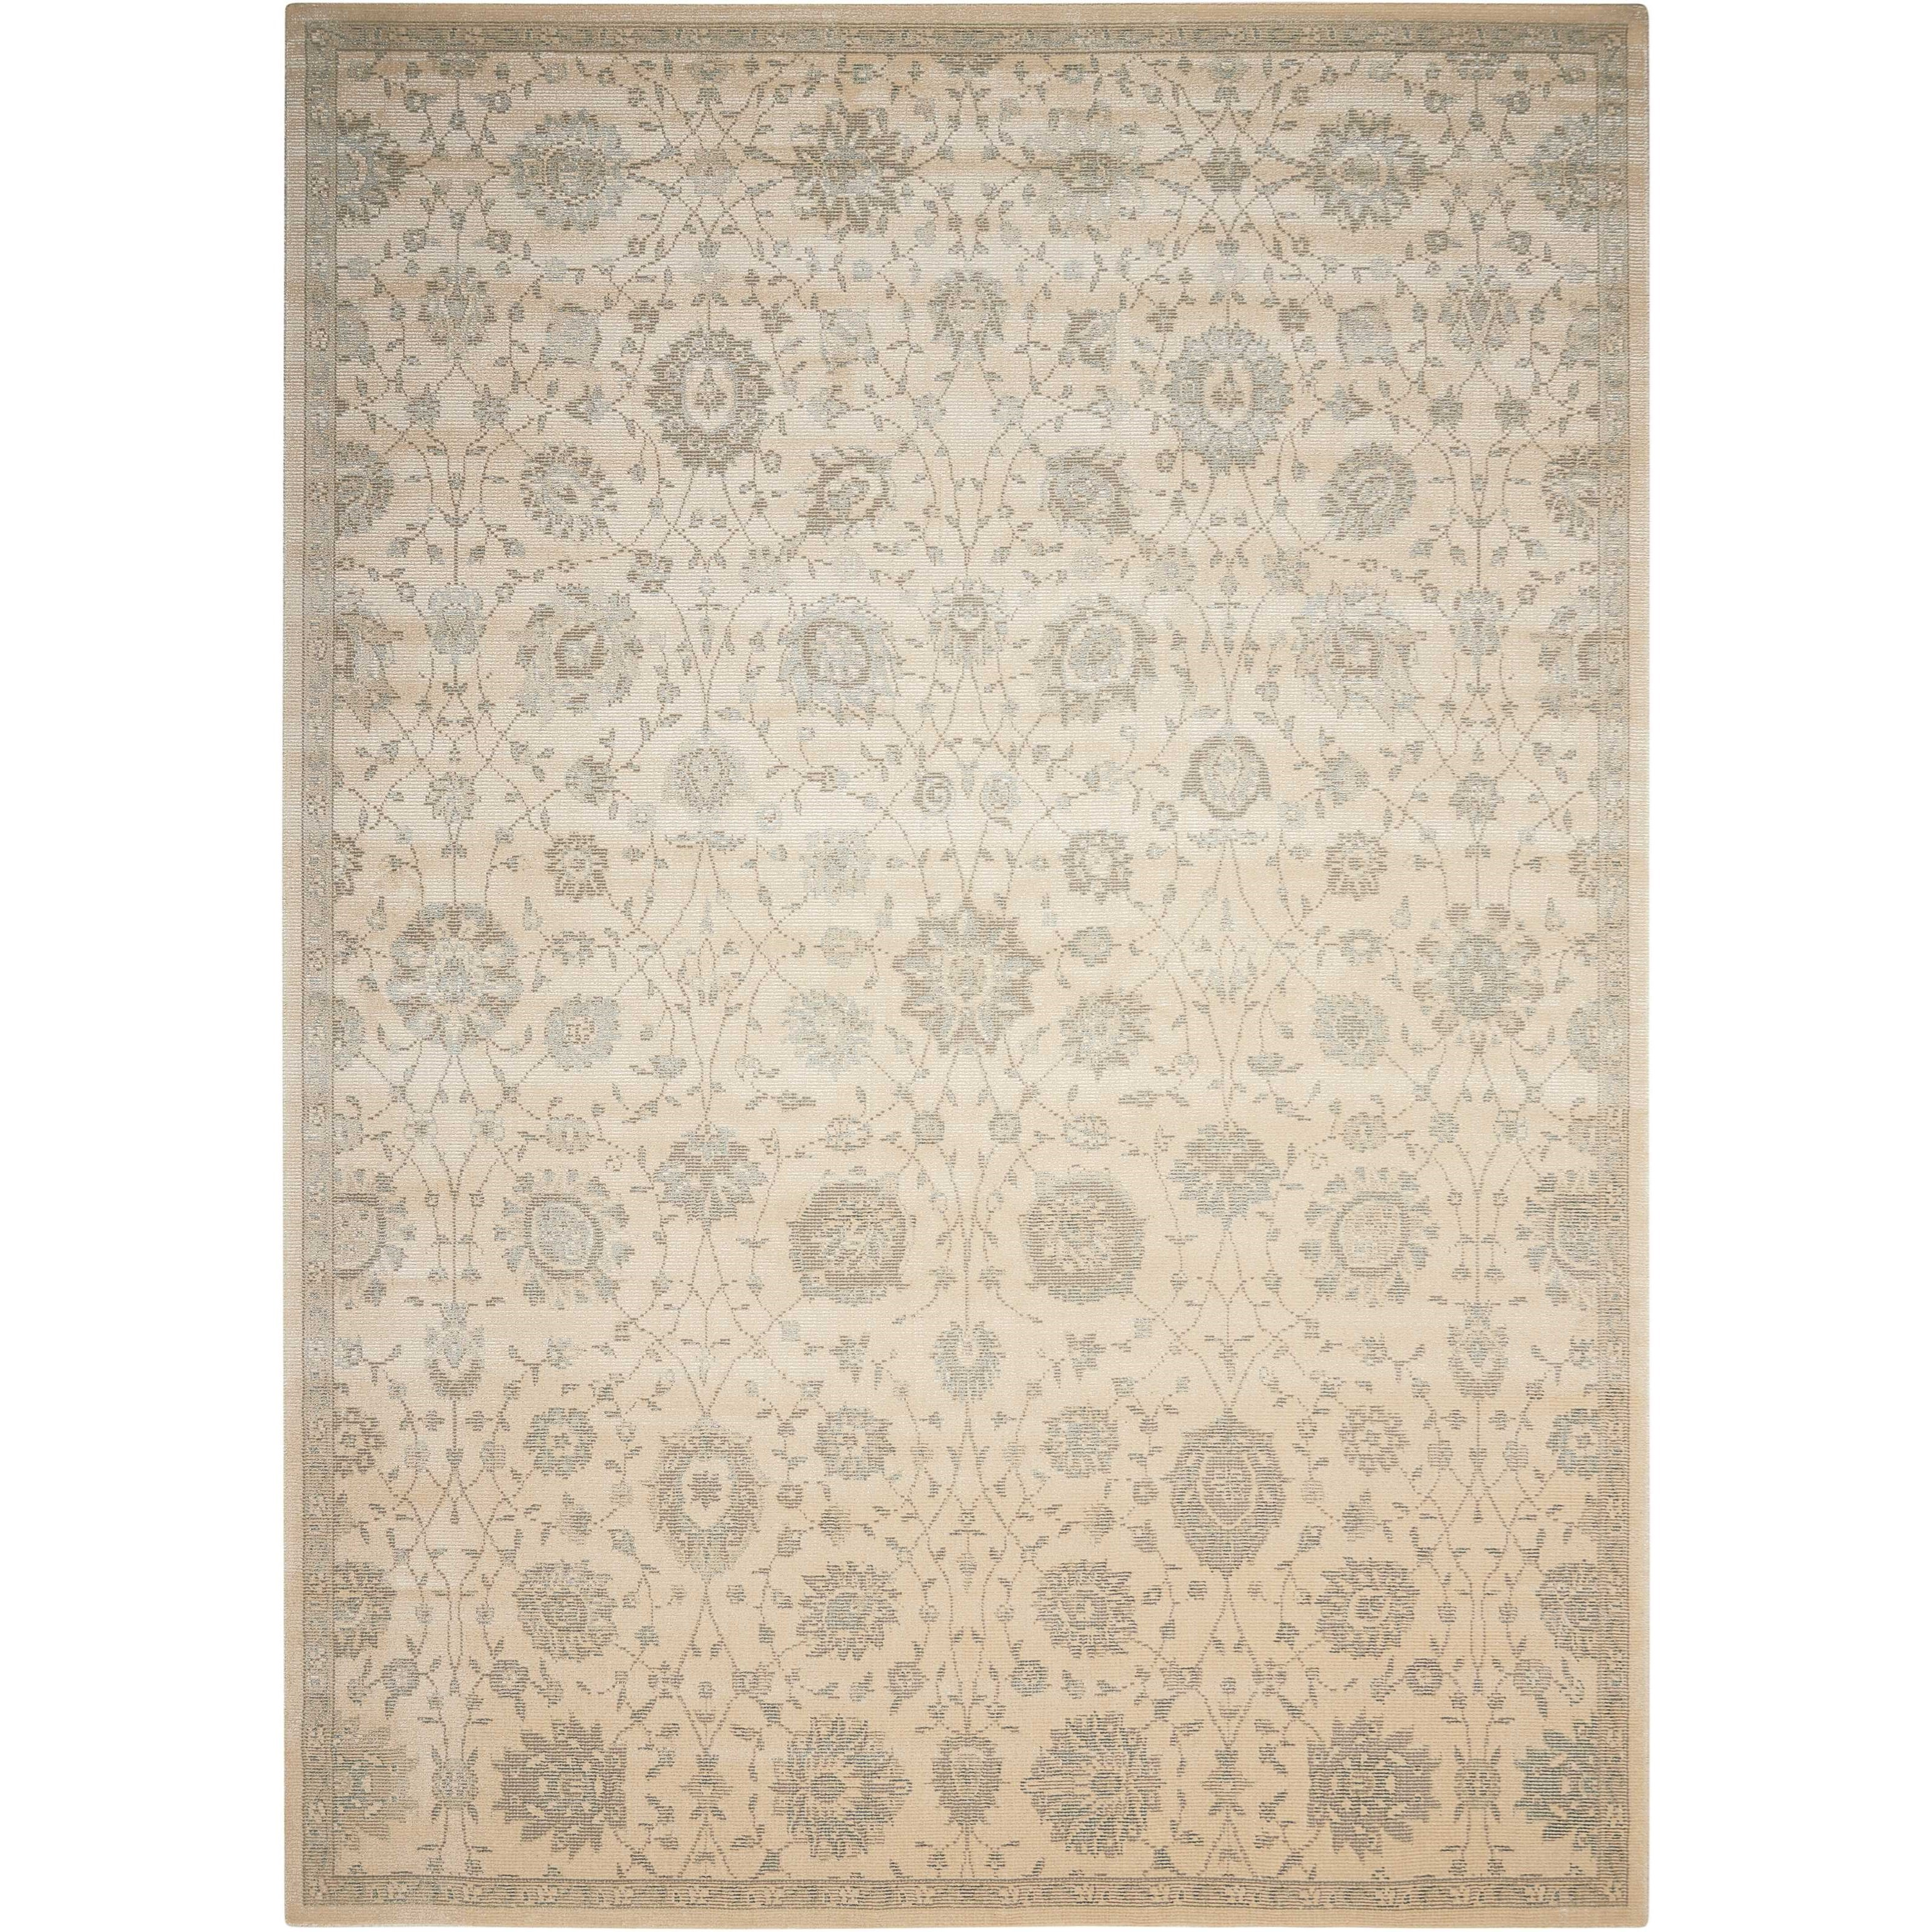 "Luminance 7'6"" x 10'6"" Cream Rectangle Rug by Nourison at Sprintz Furniture"